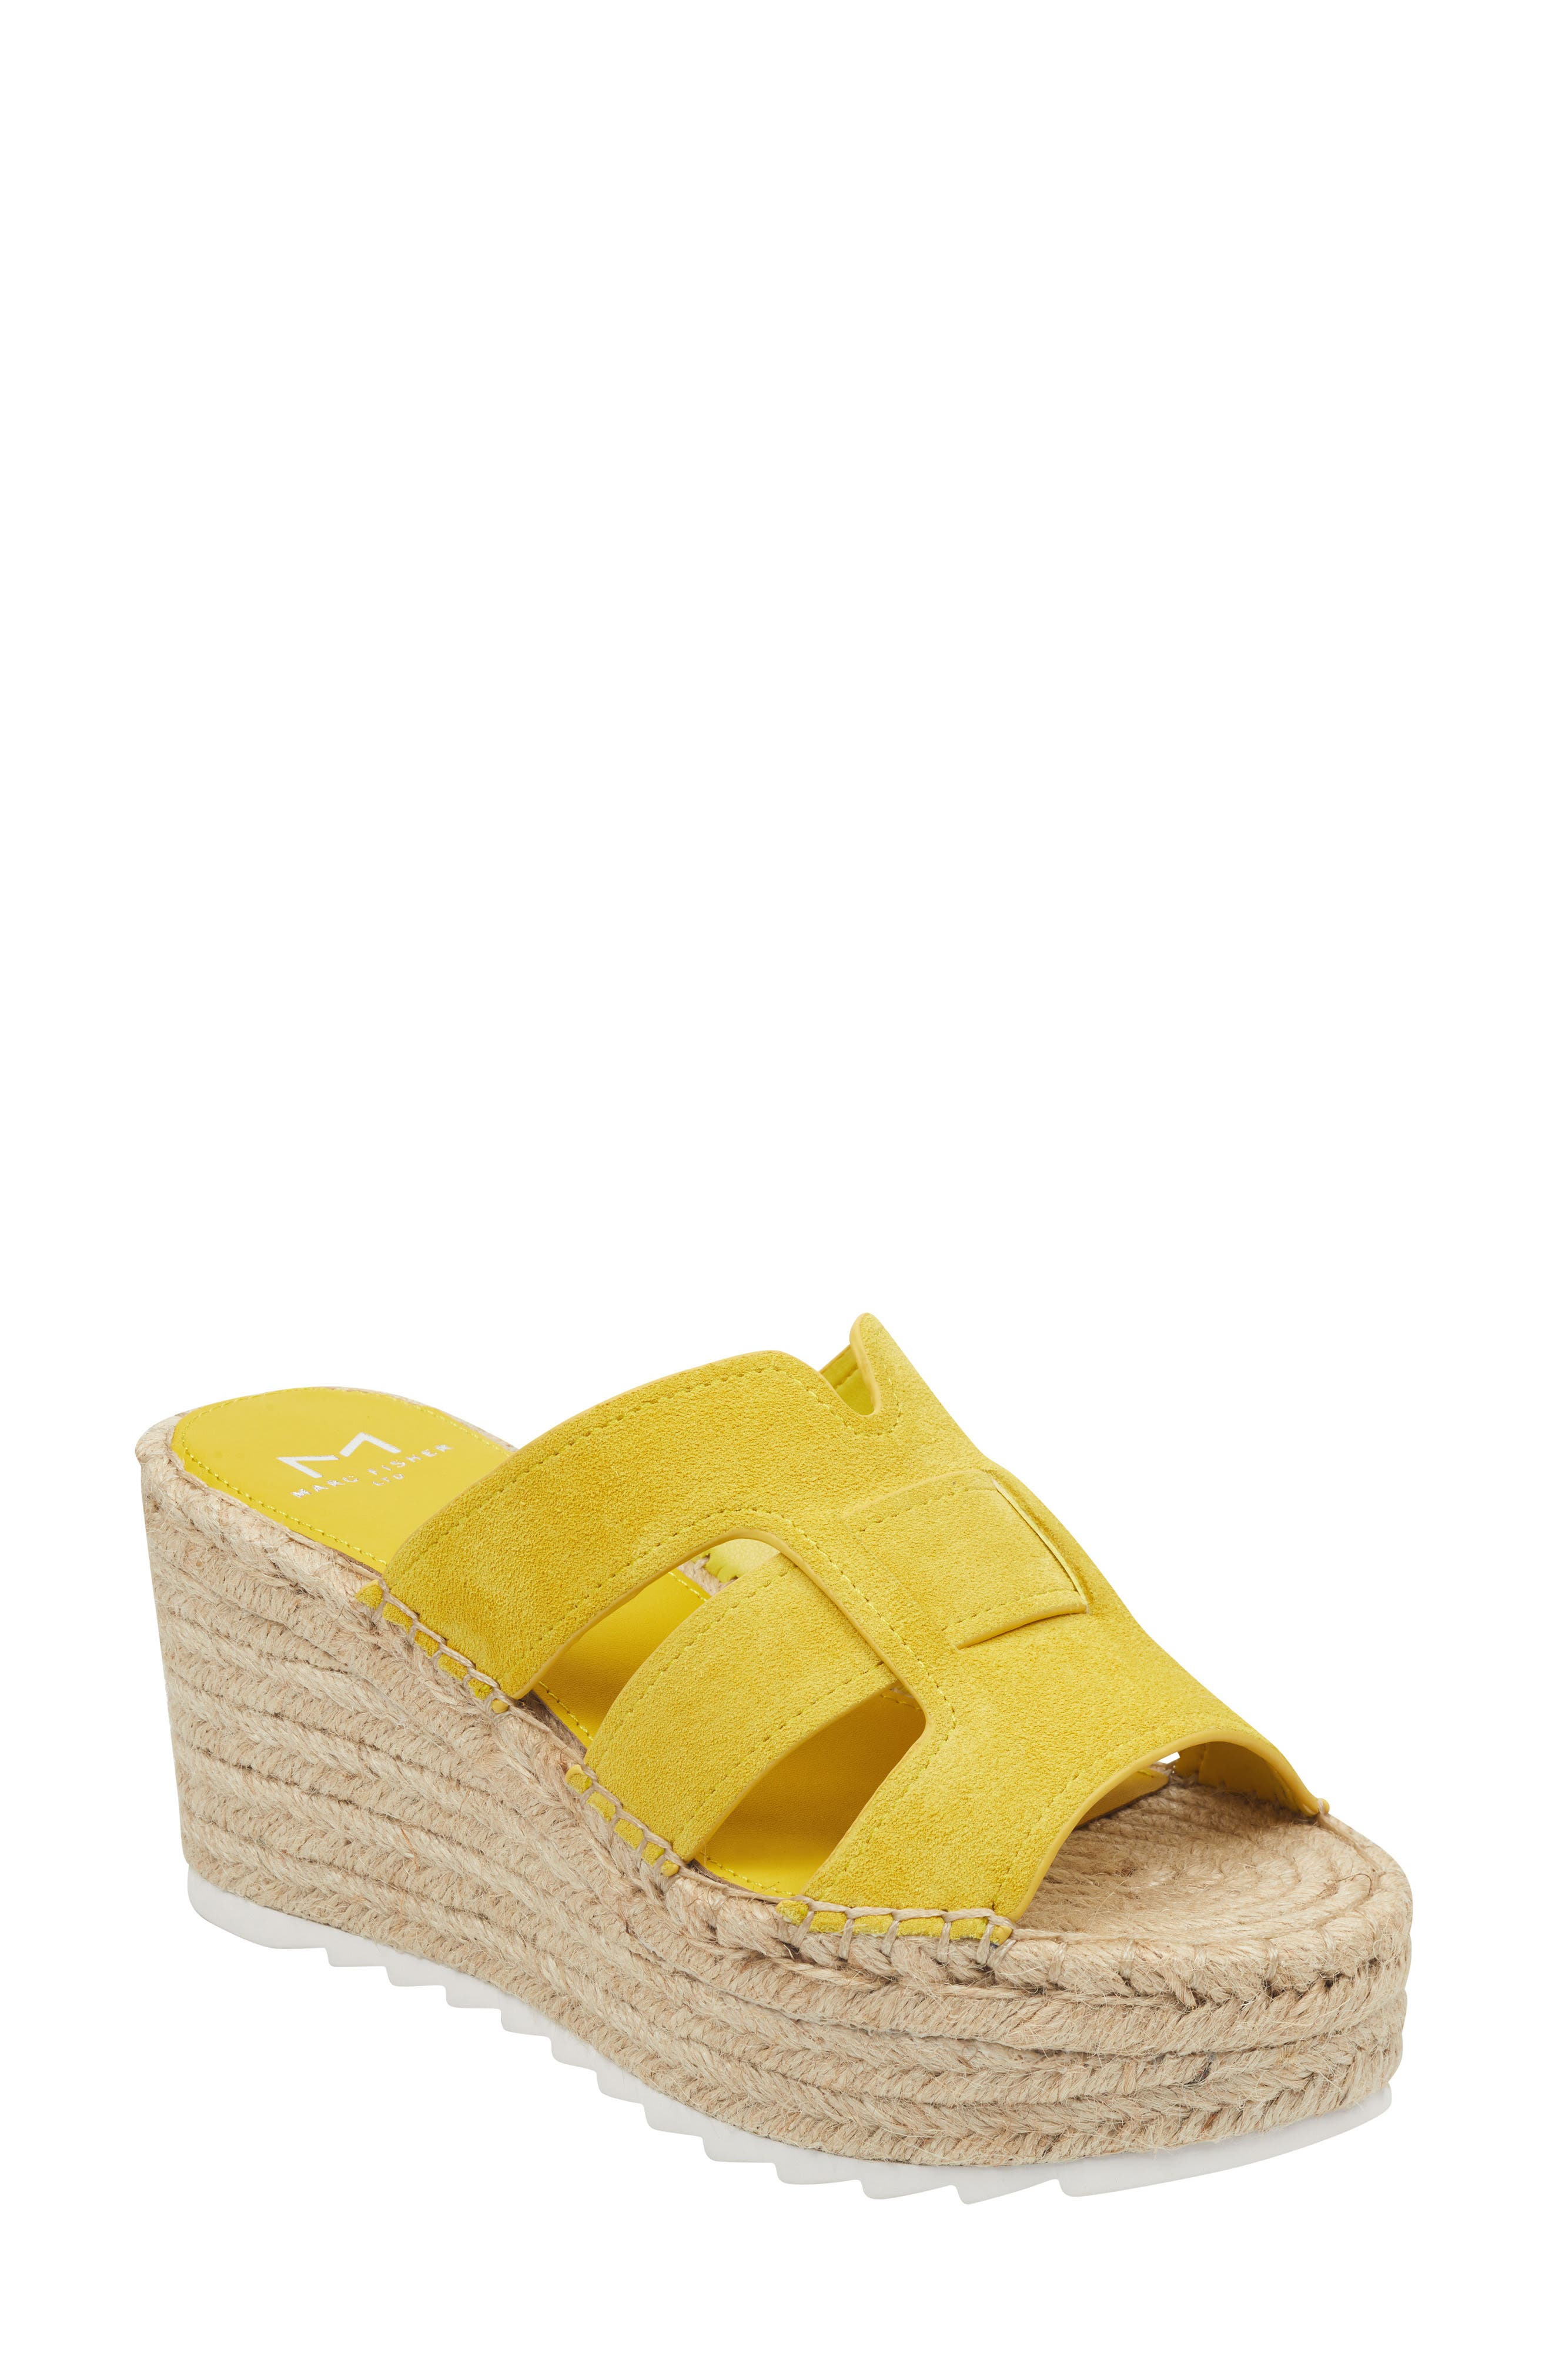 MARC FISHER LTD, Robbyn Espadrille Wedge Sandal, Main thumbnail 1, color, YELLOW SUEDE